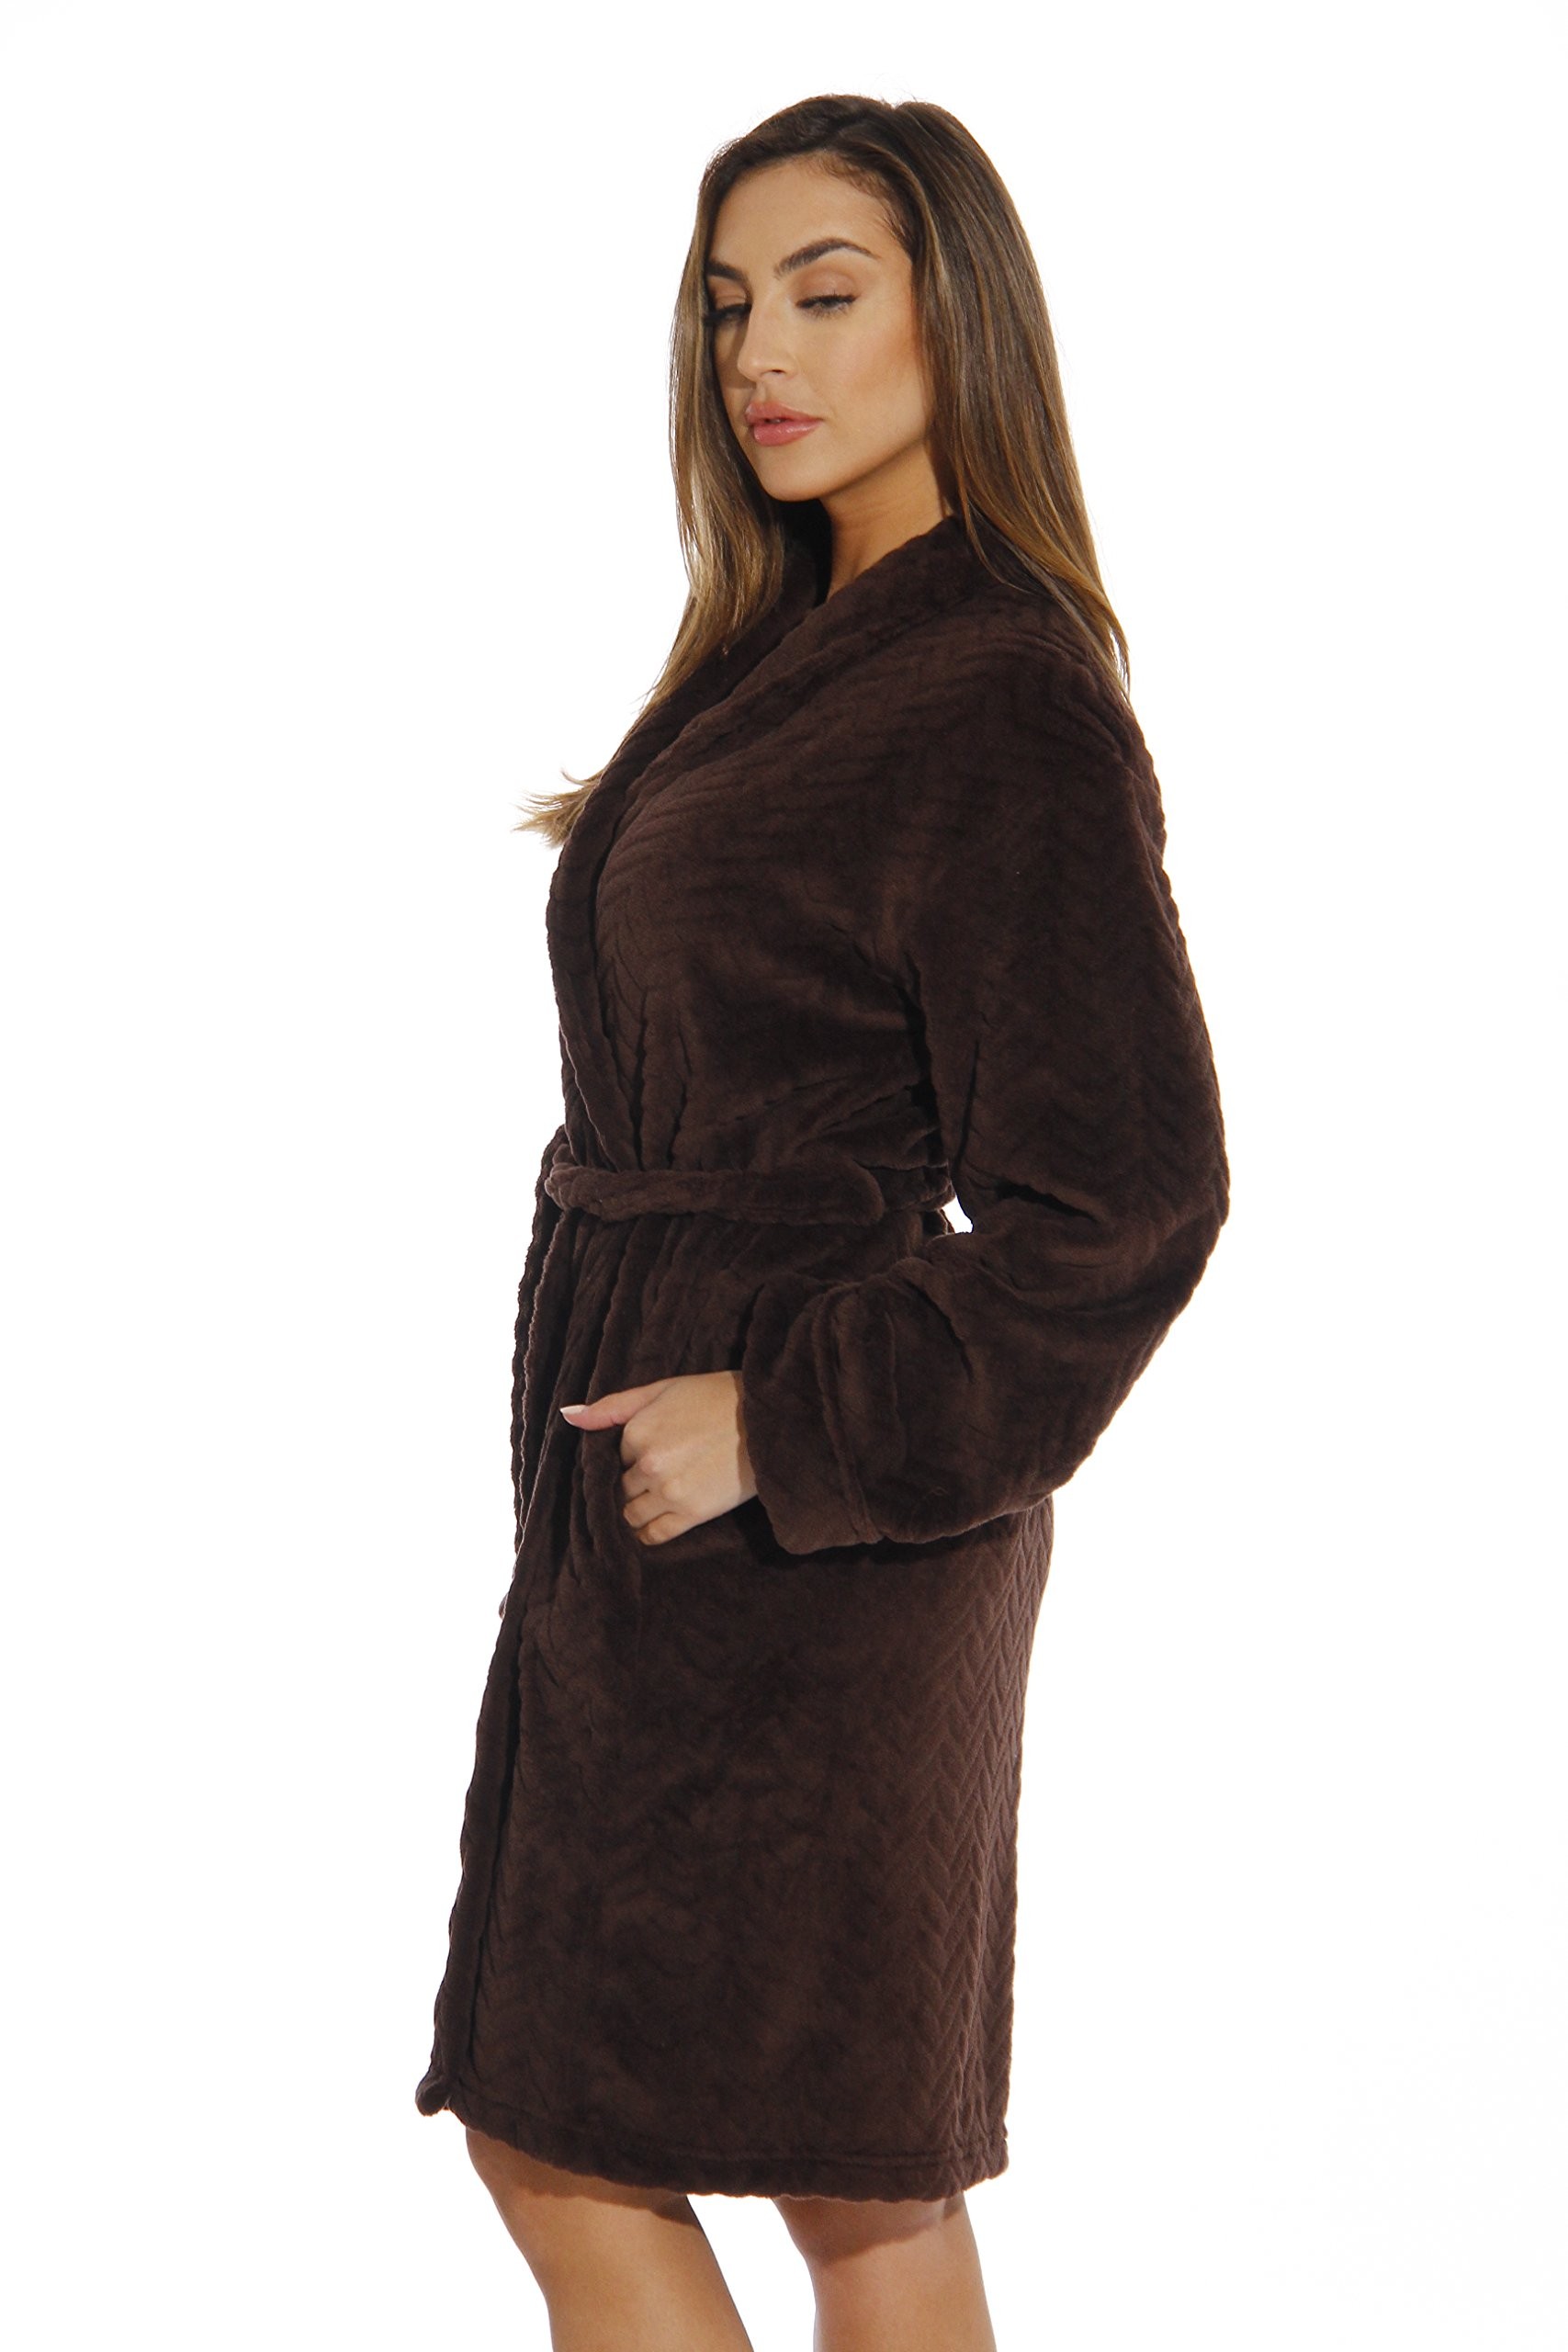 6312-Brown-L Just Love Kimono Robe / Bath Robes for Women by Just Love (Image #2)